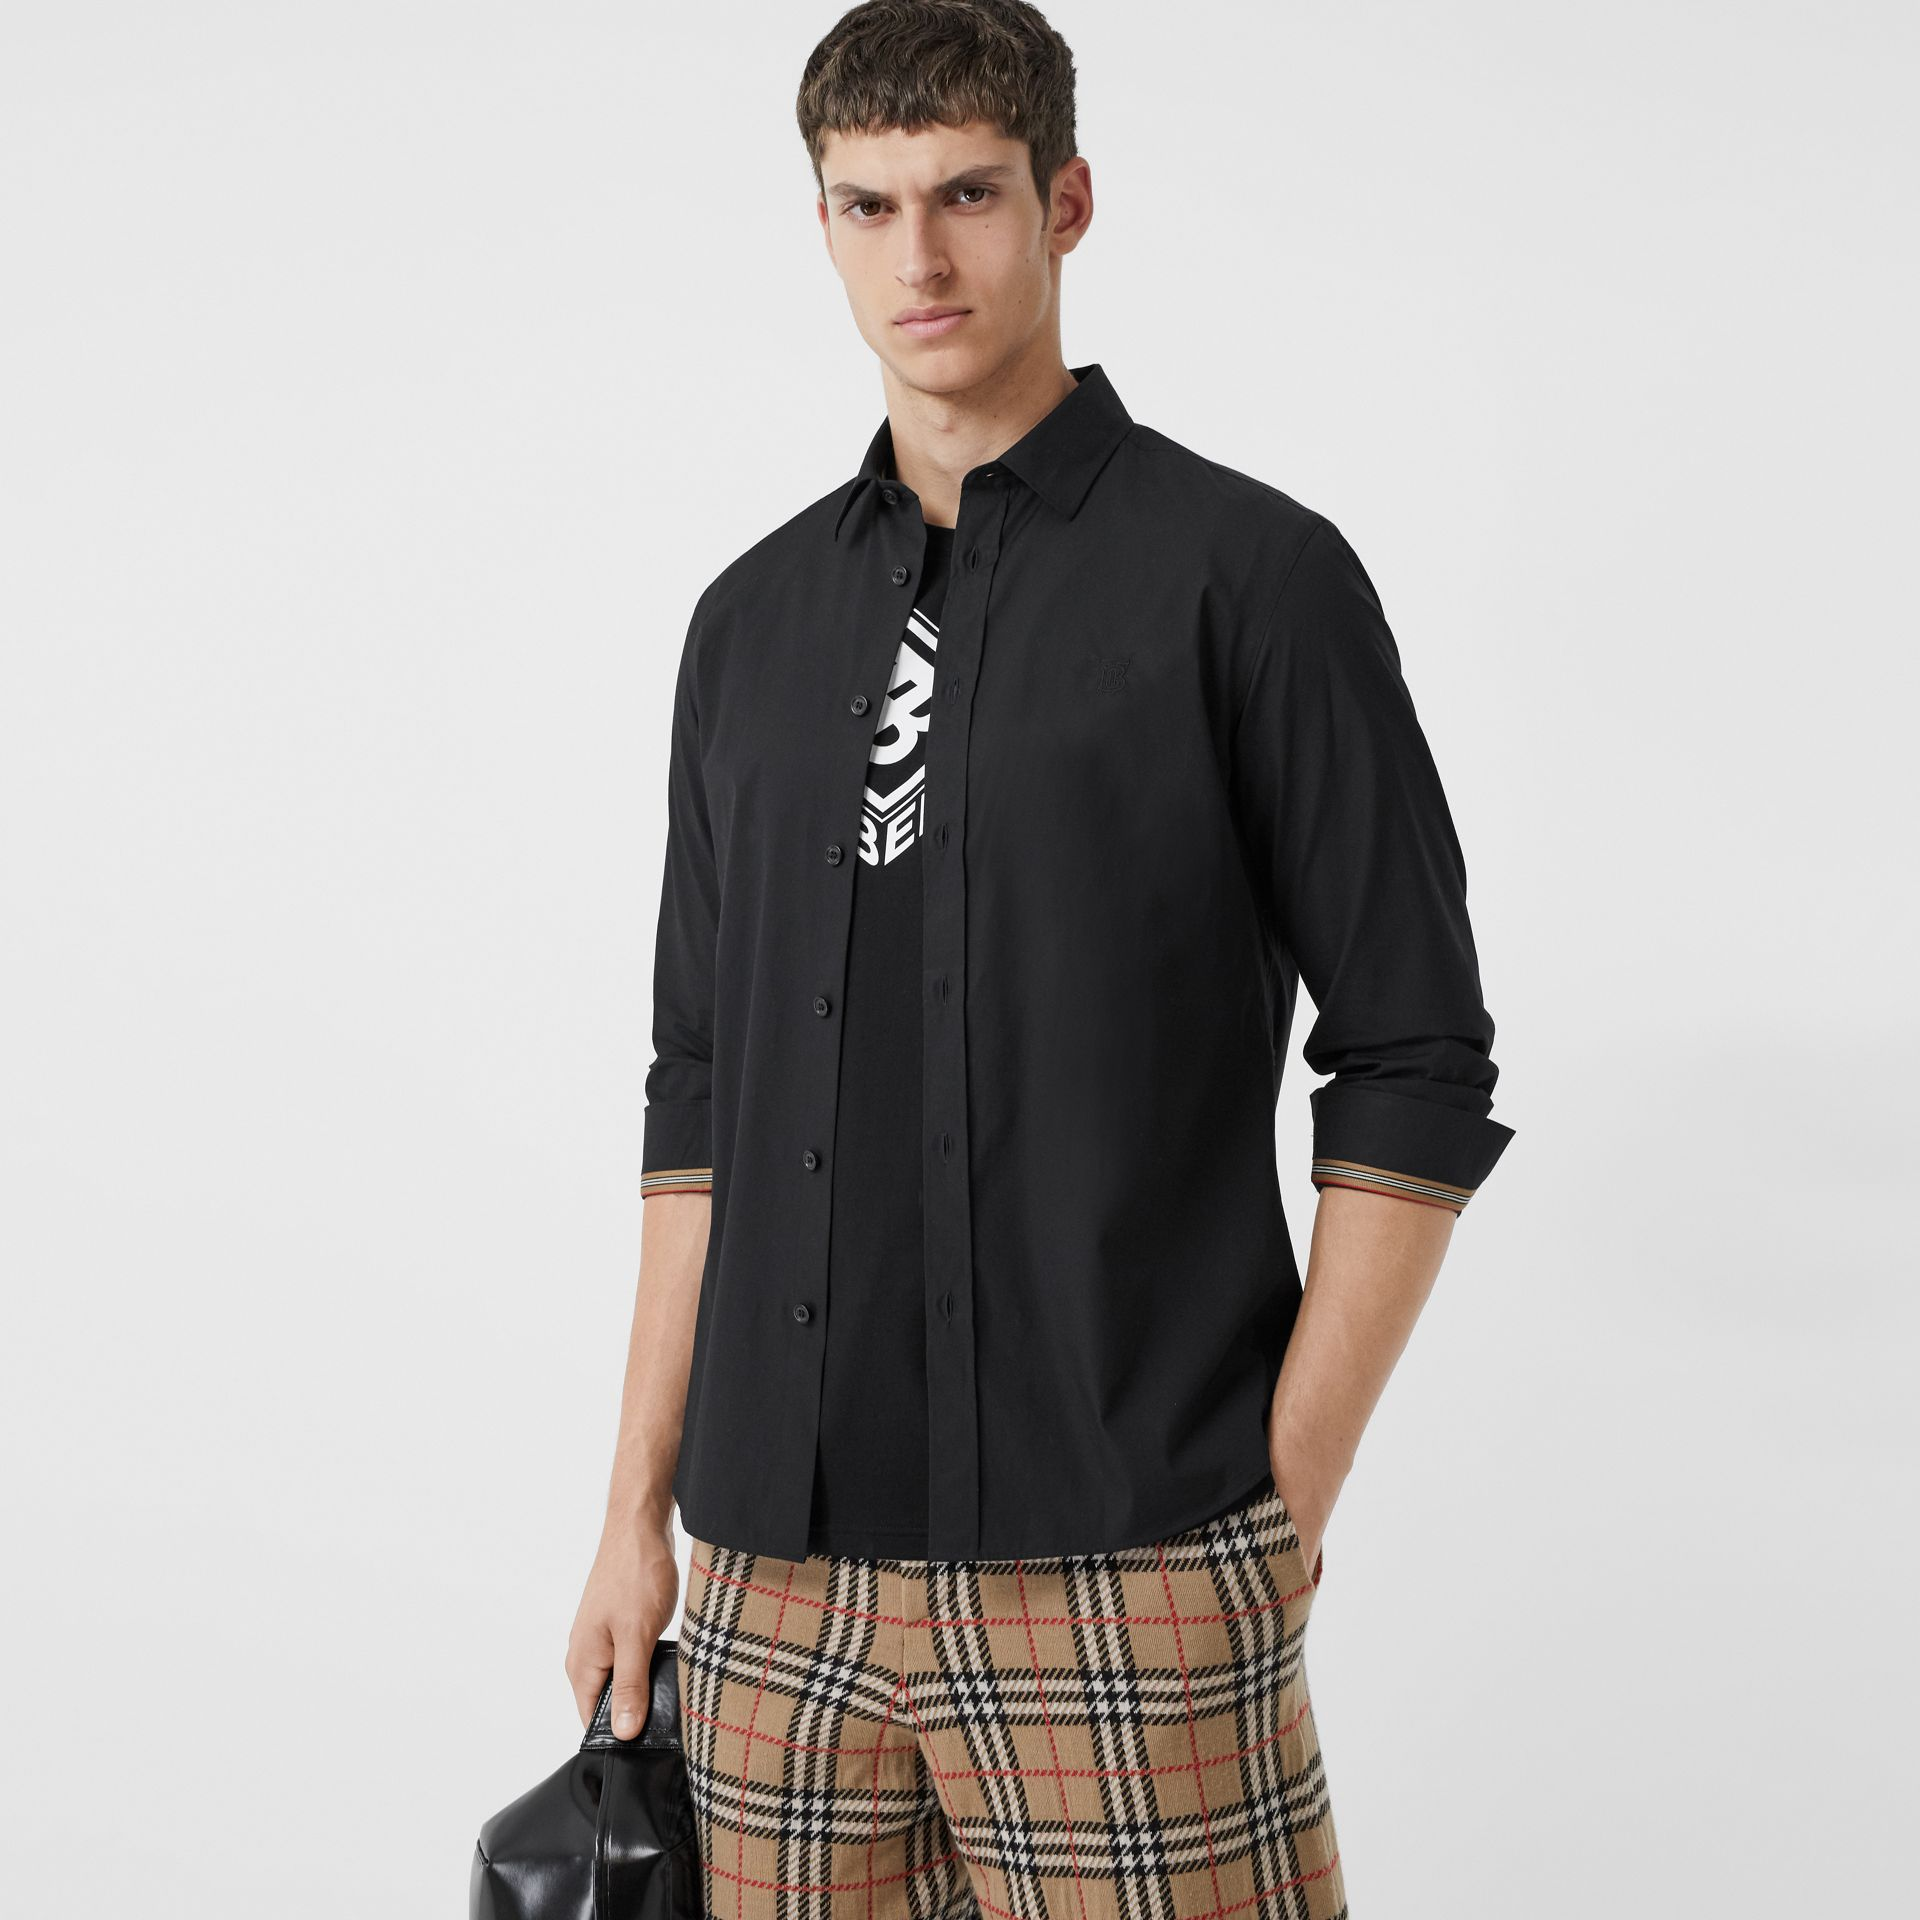 Monogram Motif Stretch Cotton Poplin Shirt in Black - Men | Burberry United States - gallery image 5